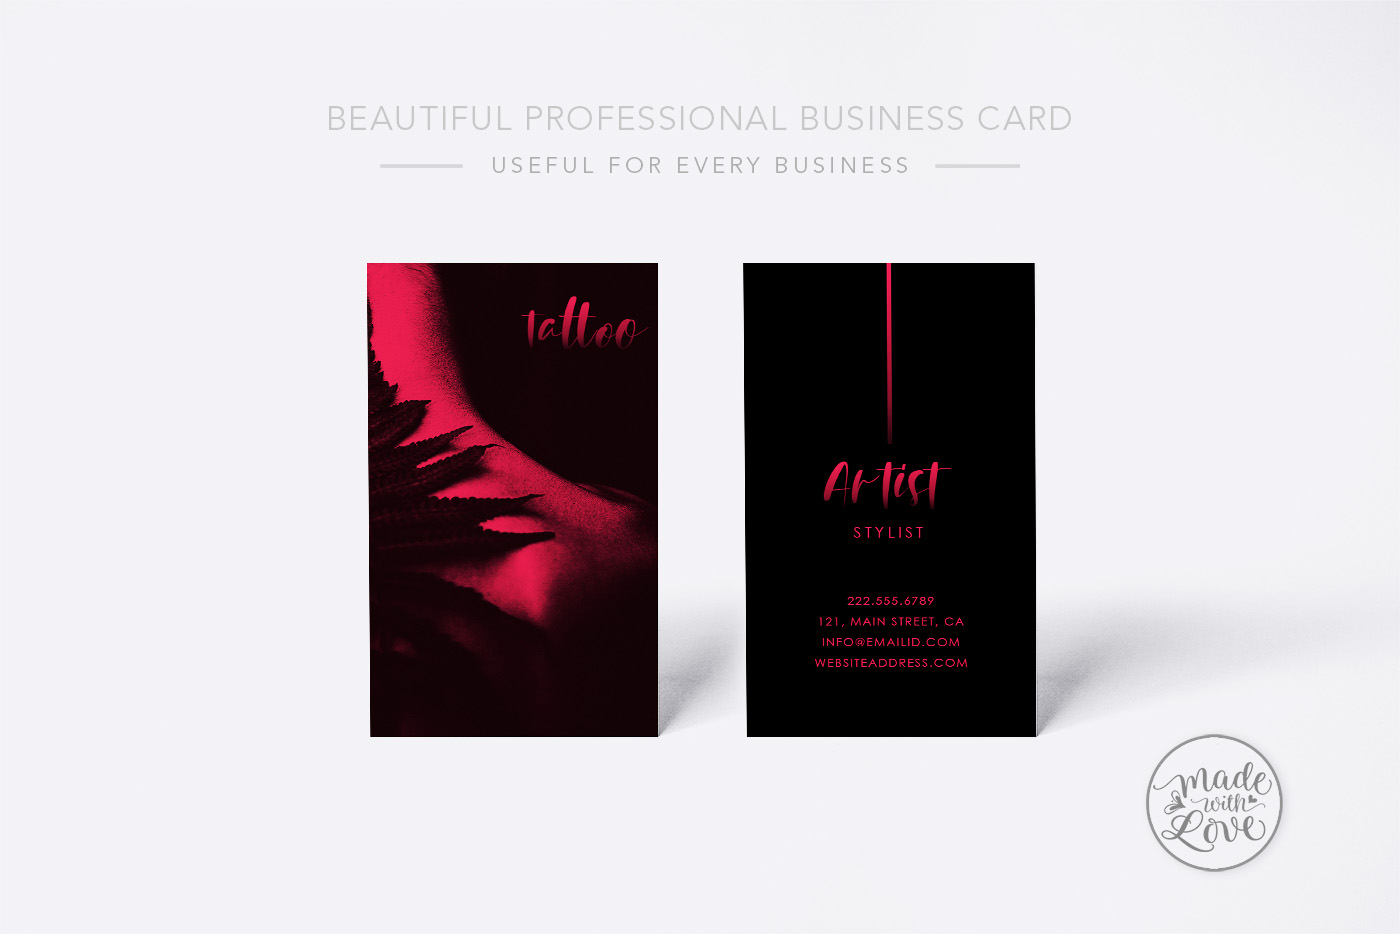 Tattoo Artist Professional Business Card example image 1